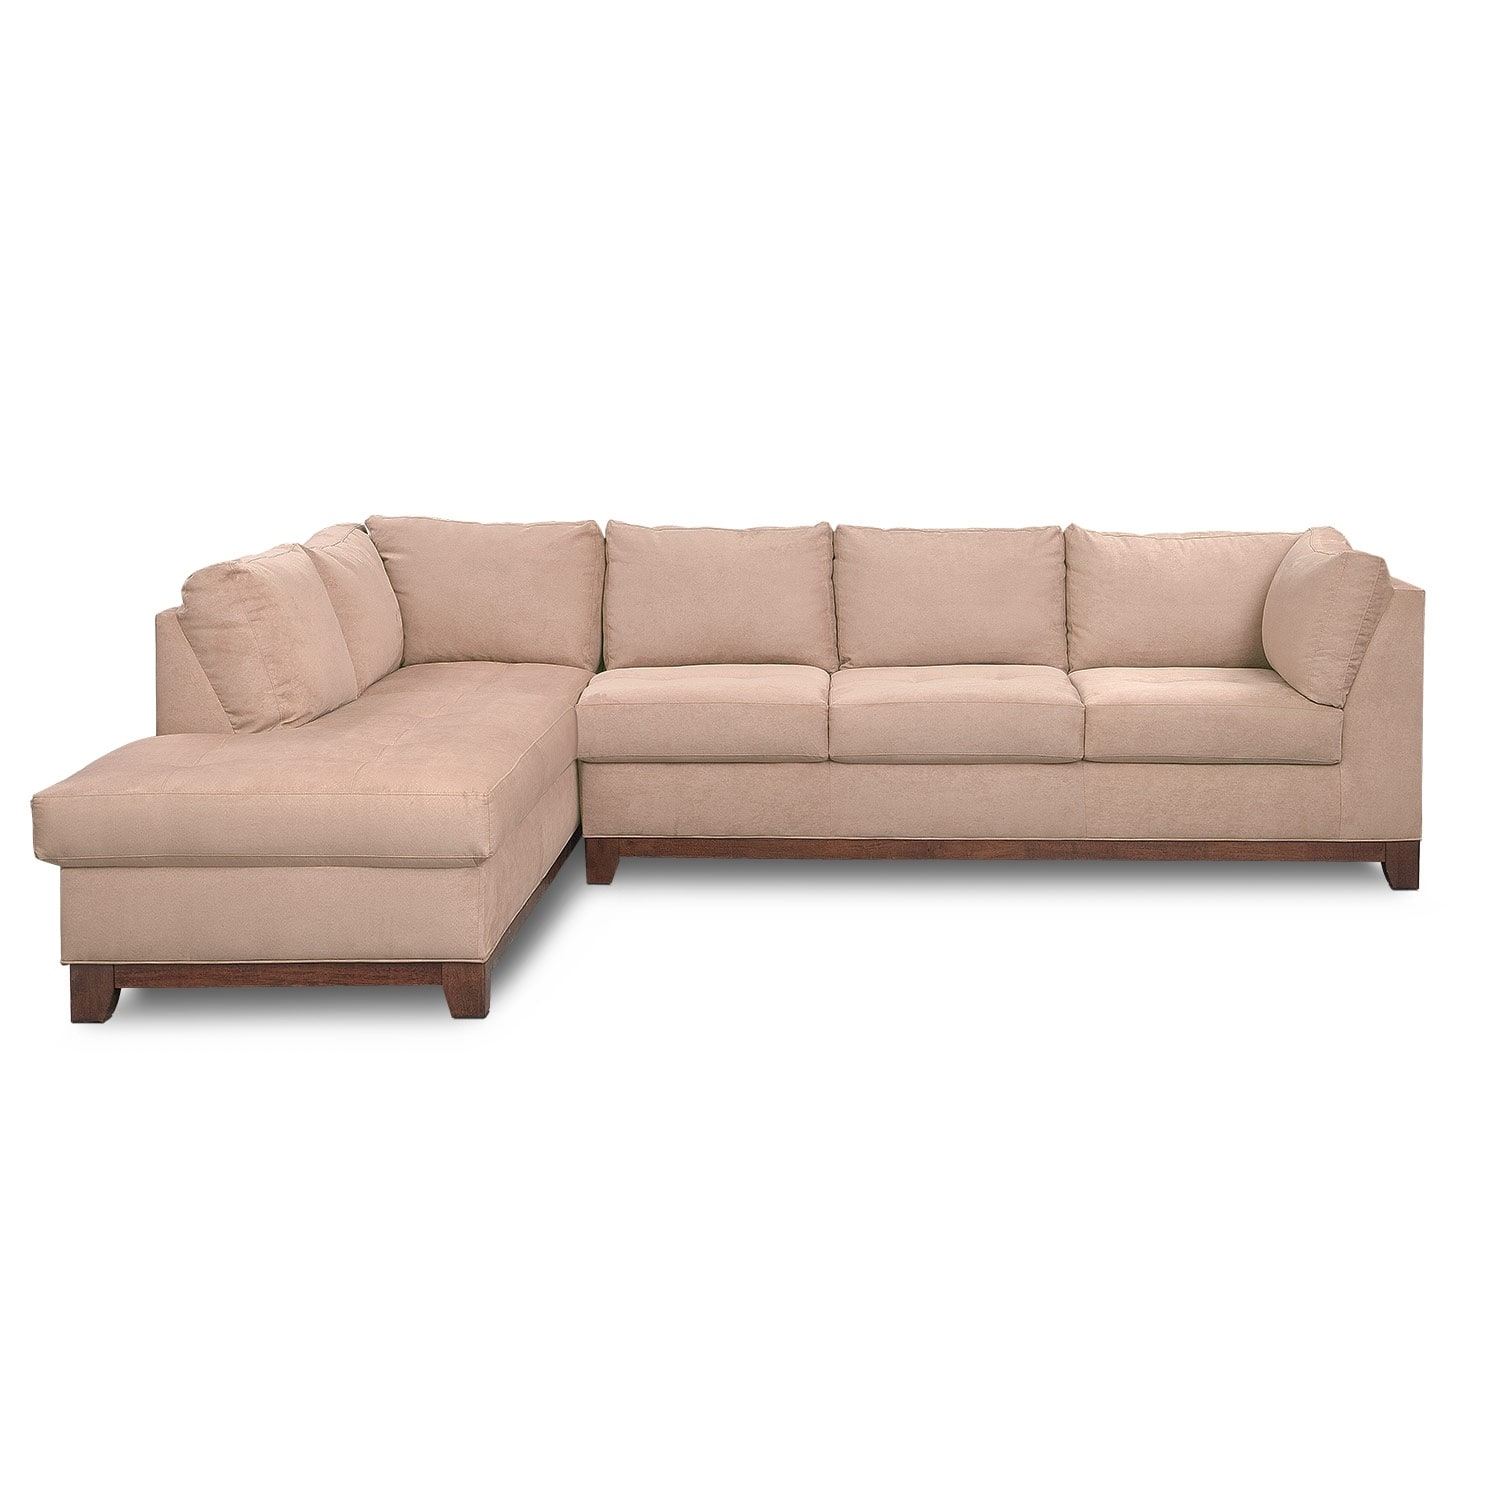 Sofa Bed For Sale In Quezon City: Soho 2-Piece Sectional With Left-Facing Chaise